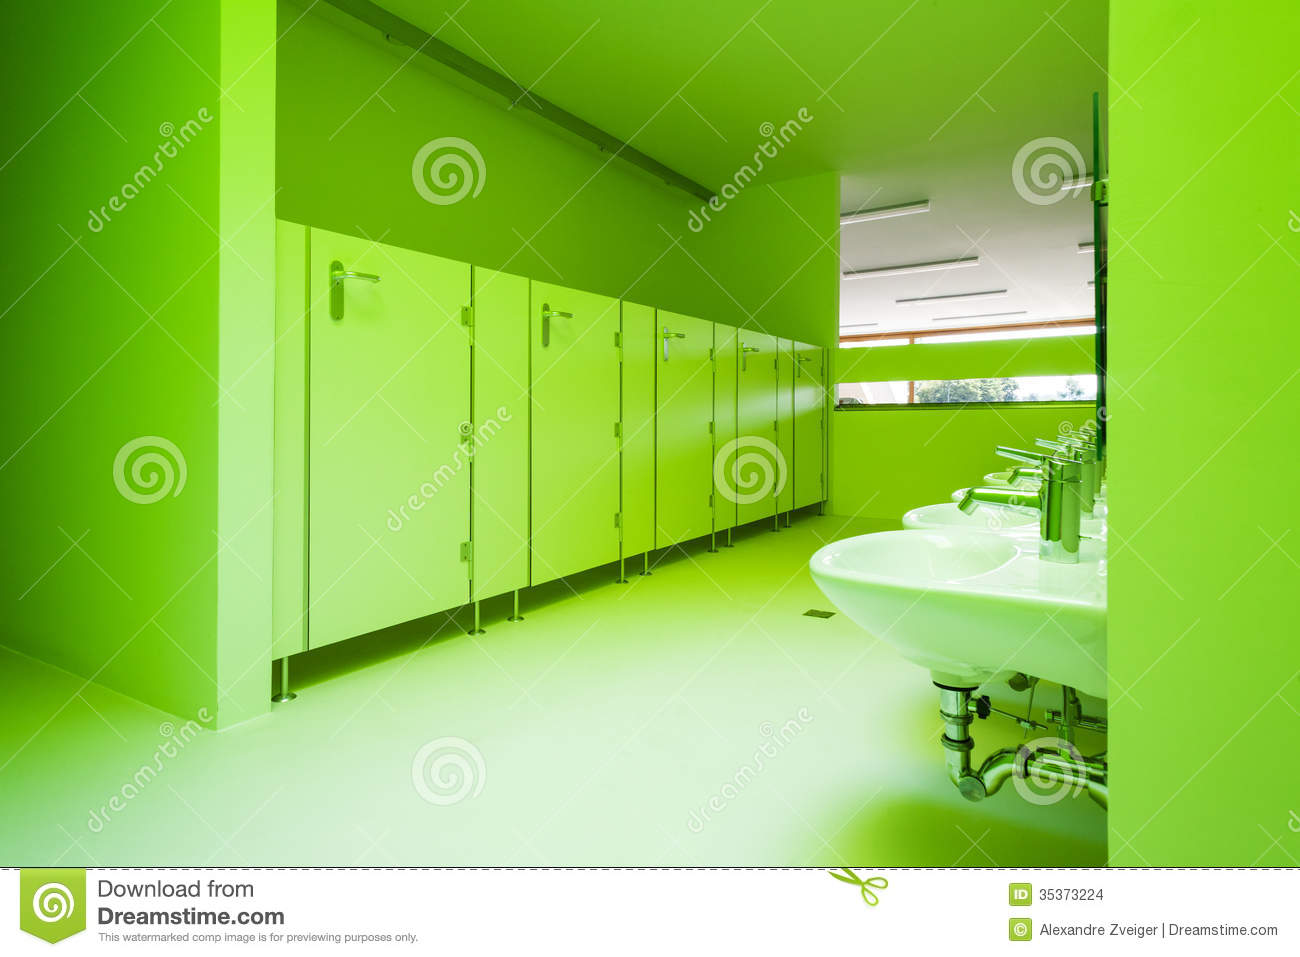 Public toilets stock images image 35373224 Public bathroom design architecture